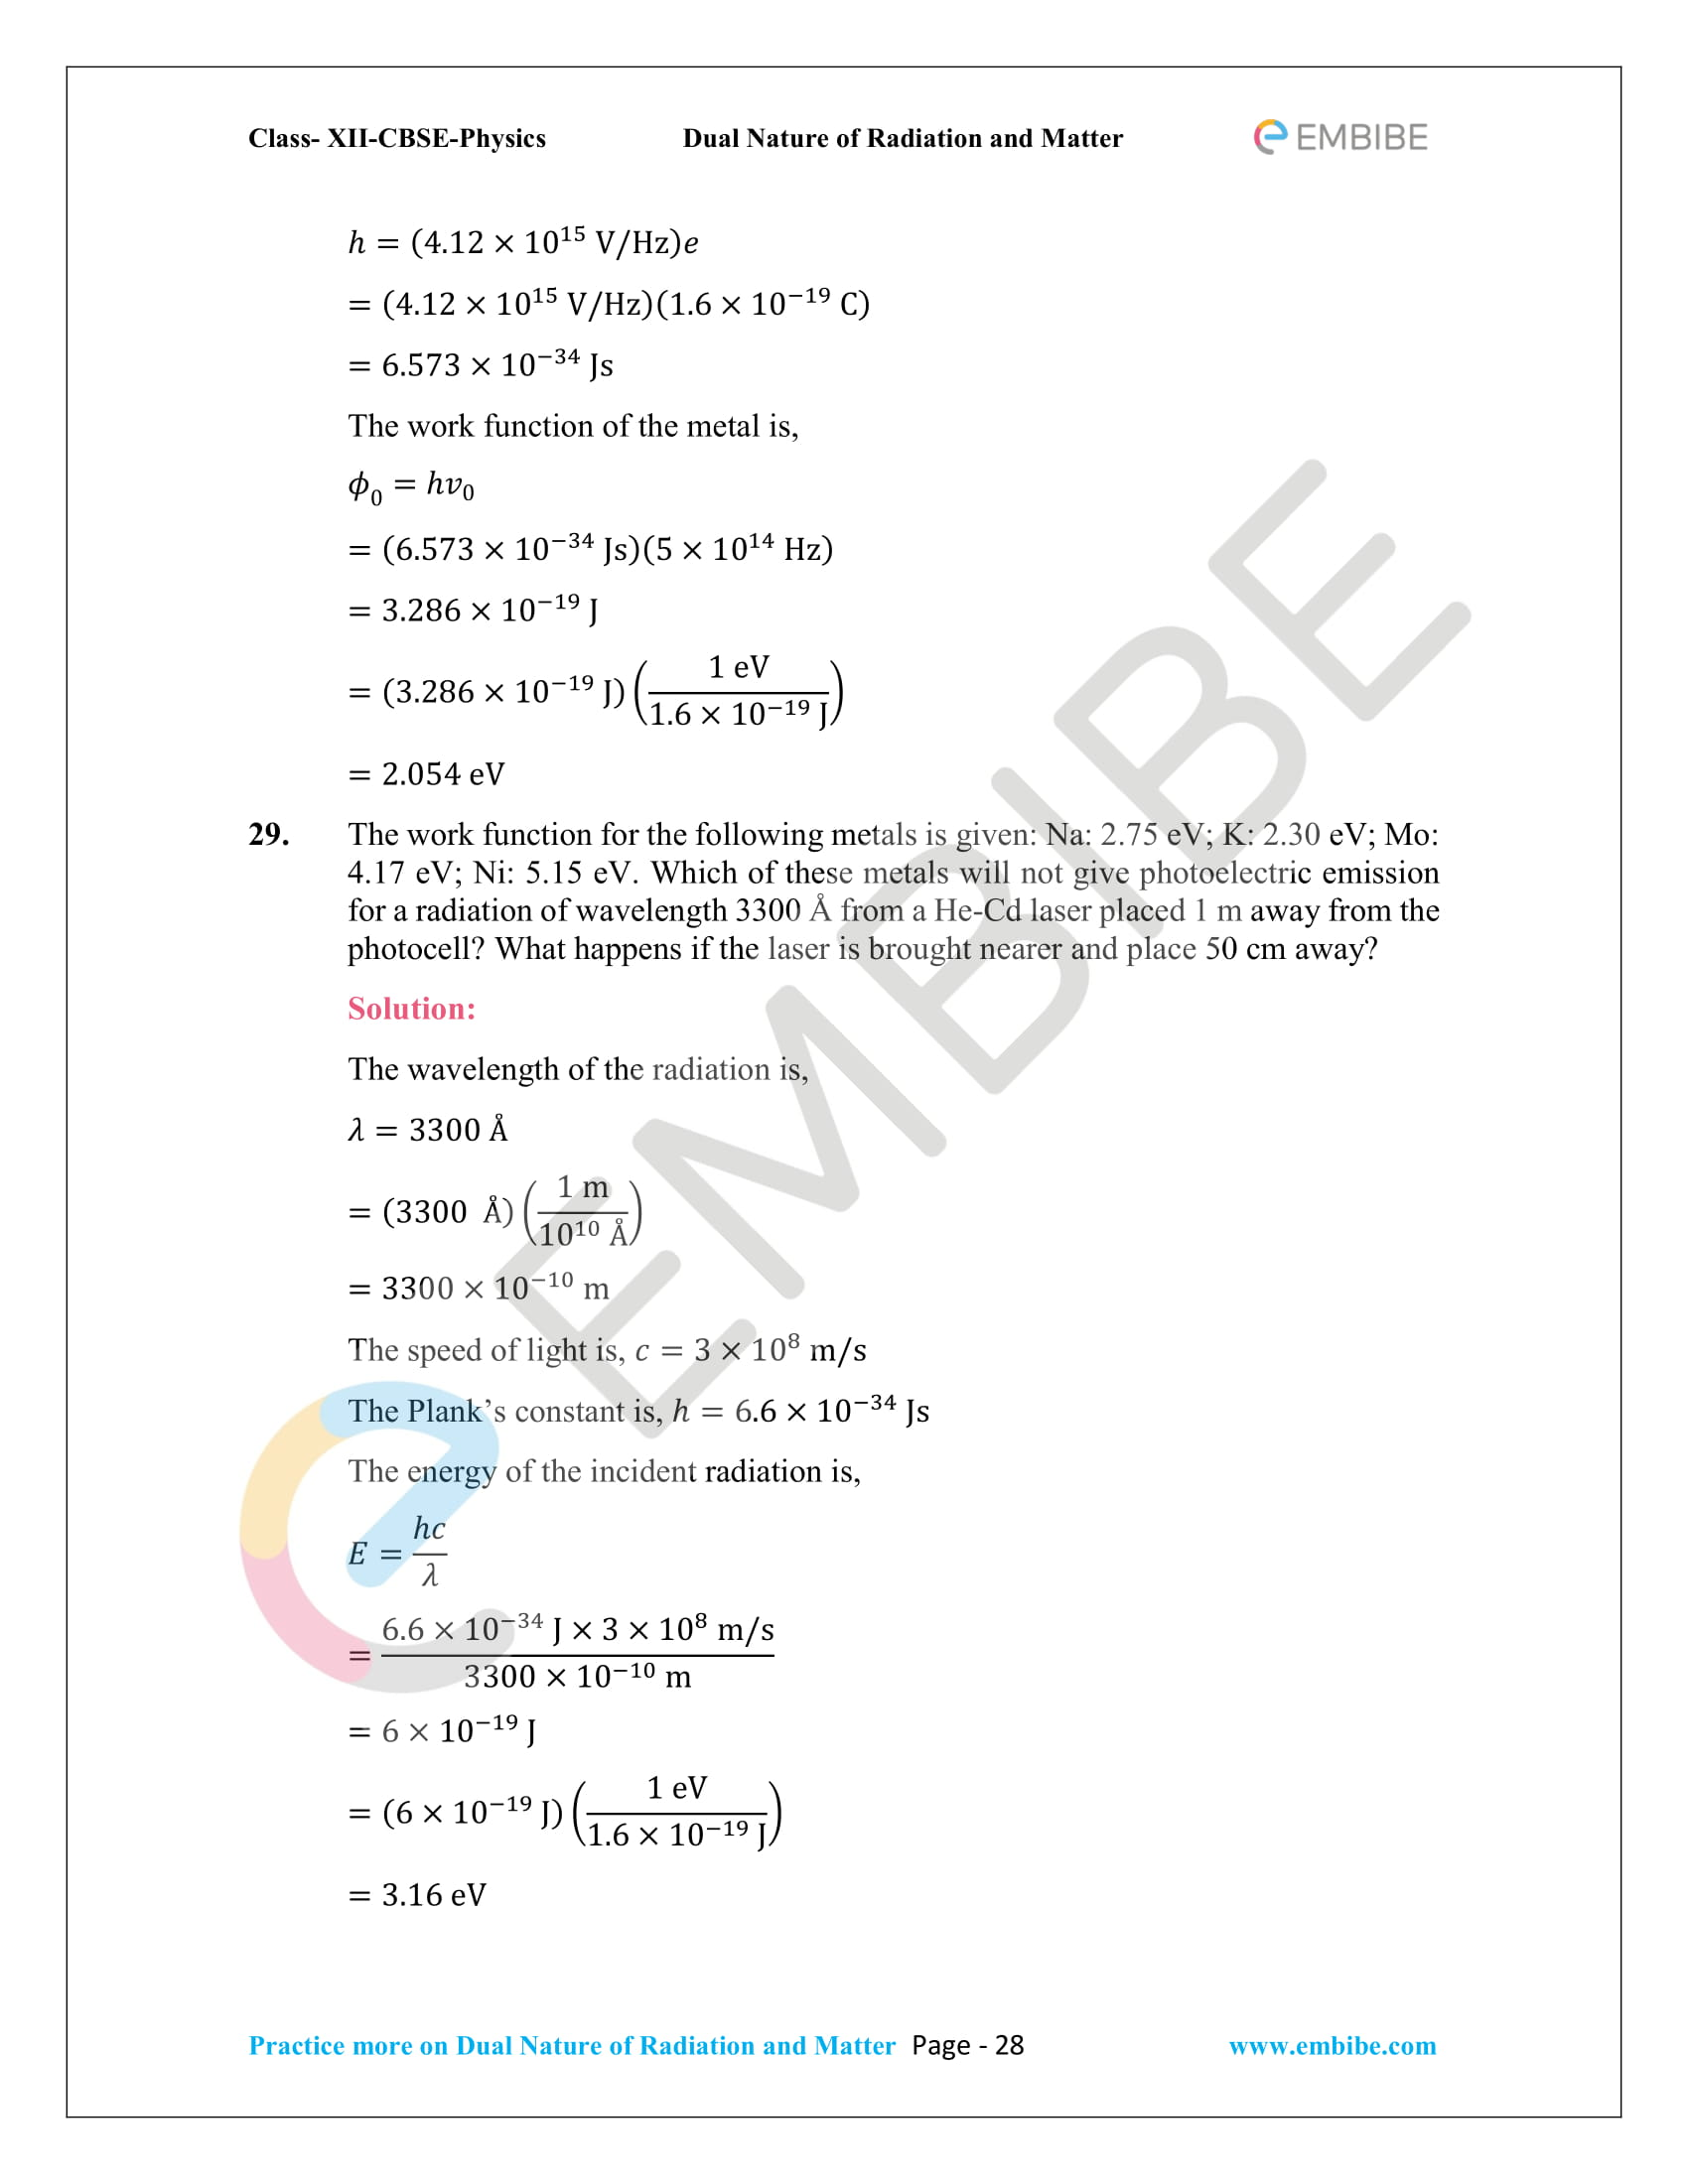 NCERT_Grade 12_Physics_Ch_11_Dual Nature of Radiation and Matter-28